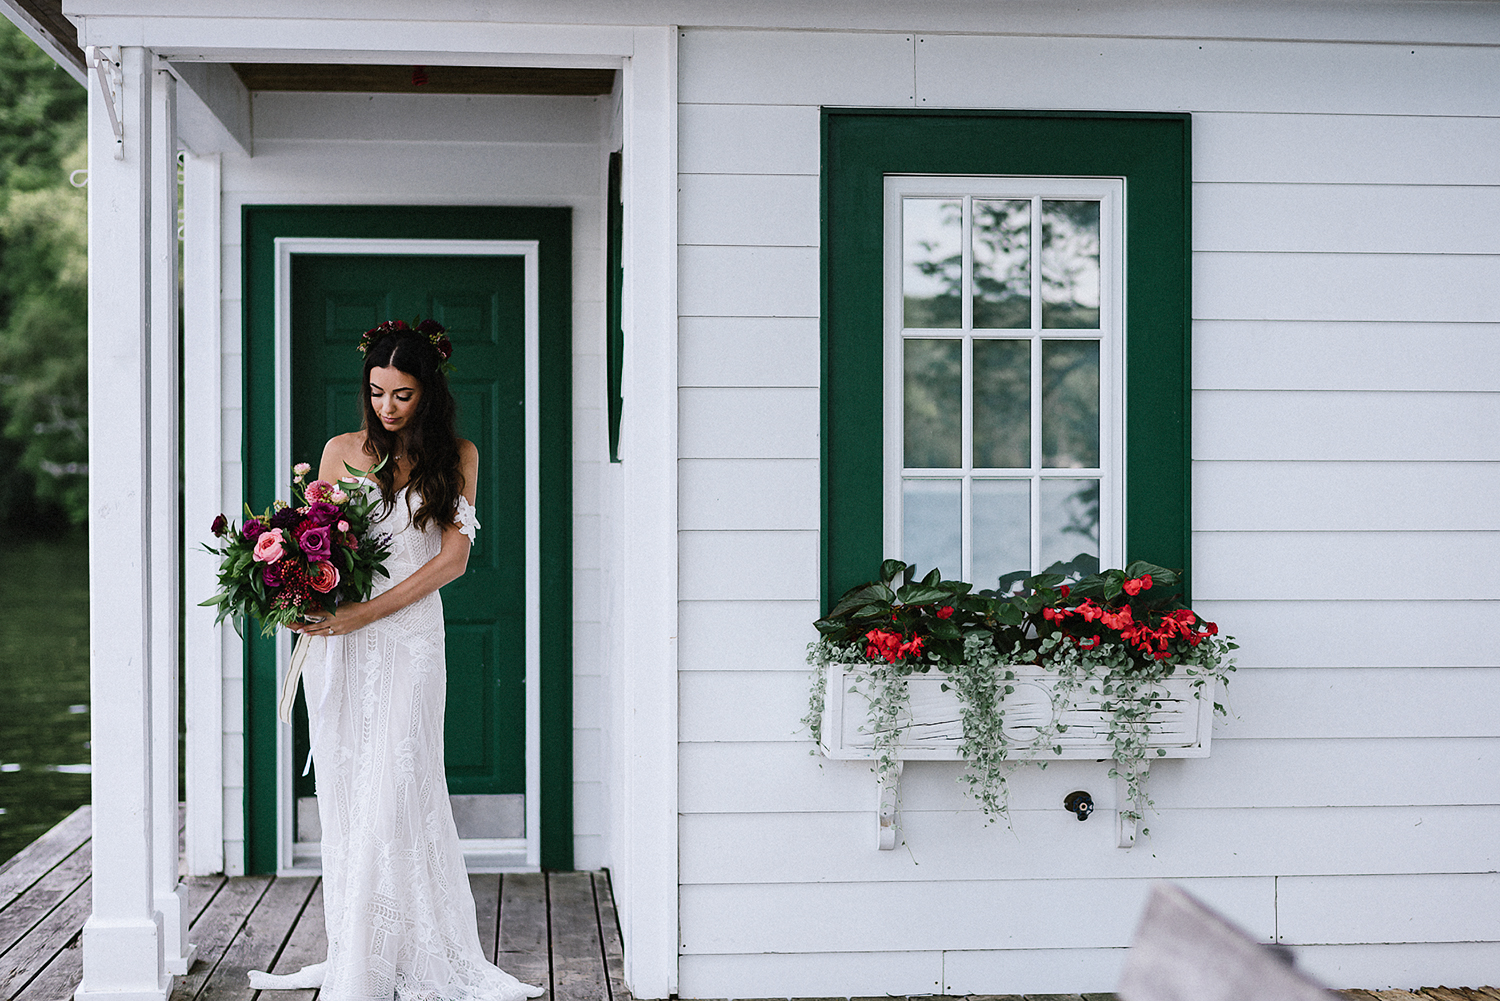 Muskoka-Cottage-Wedding-Photography-Photographer_Photojournalistic-Documentary-Wedding-Photography_Vintage-Bride-Sherwood-Inn-Lake-Wedding-Venue-Romantic-Bridal-Portrait.jpg